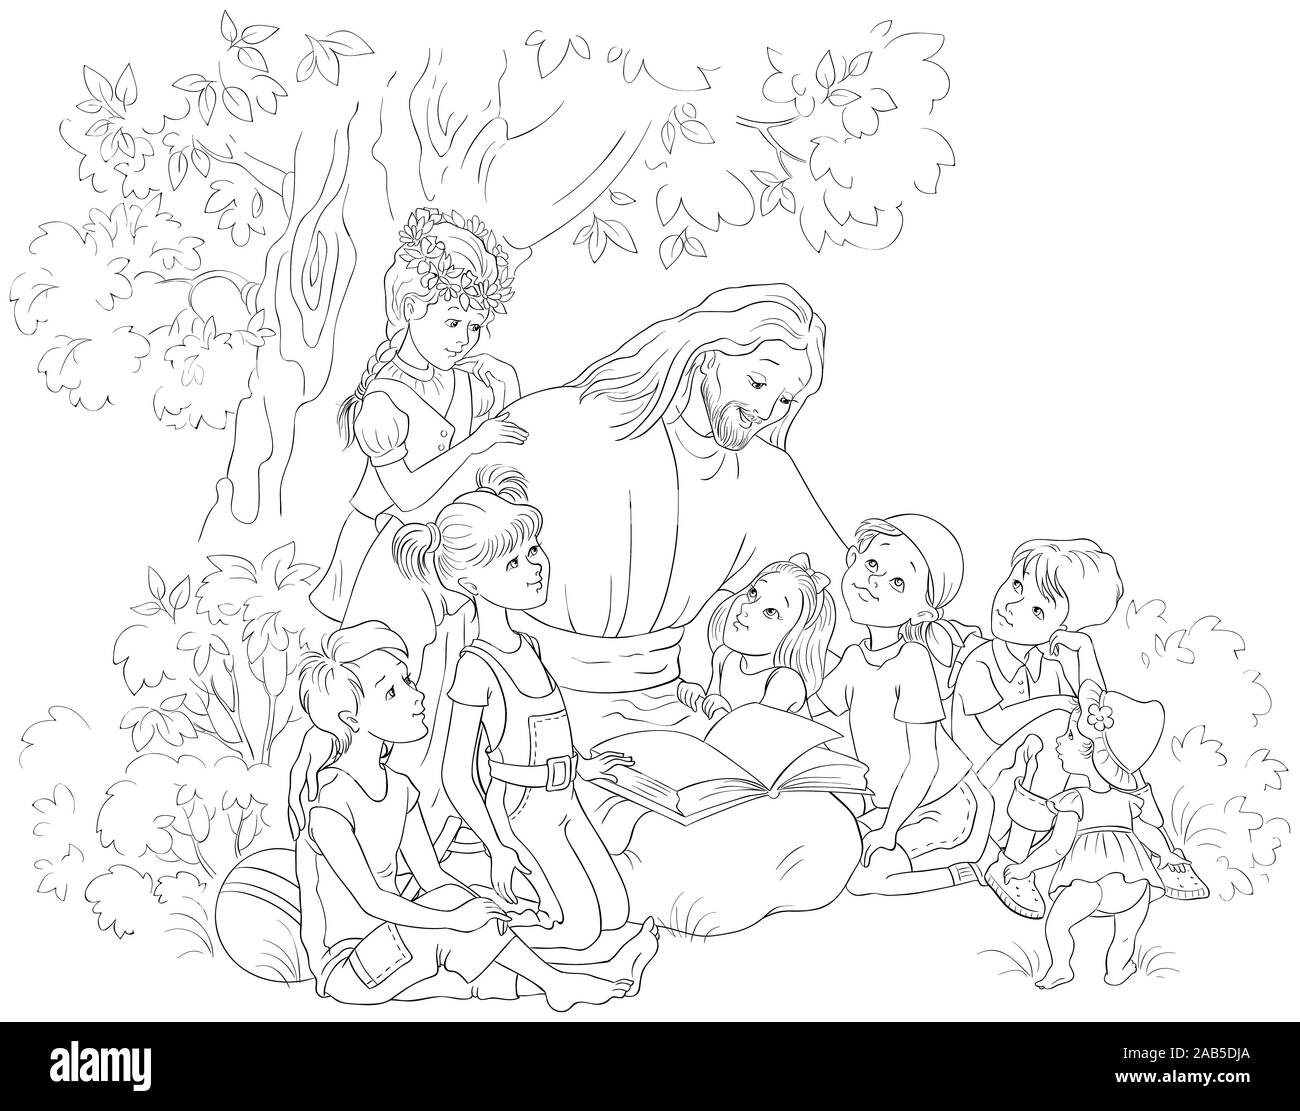 jesus reading the bible with children coloring page christian cartoon black and white illustration 2AB5DJA